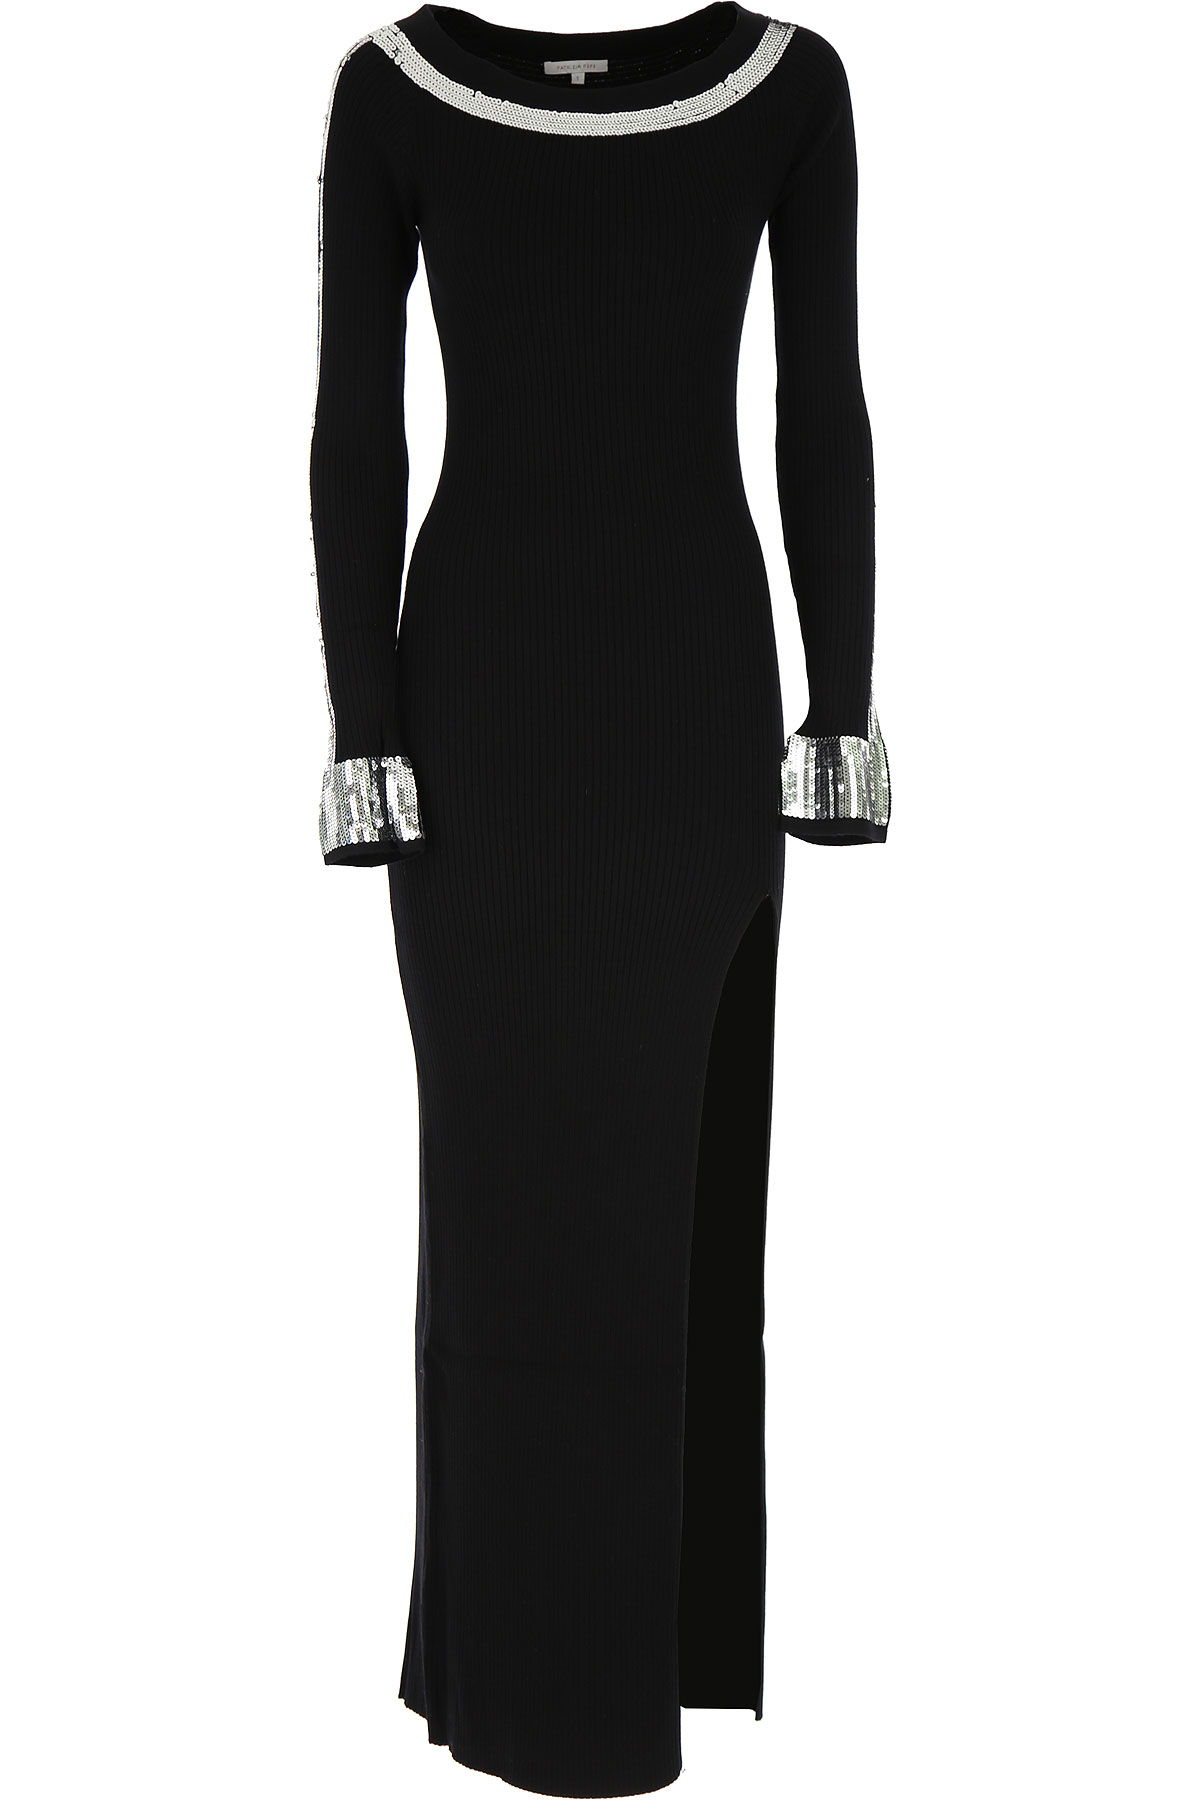 Patrizia Pepe Dress for Women, Evening Cocktail Party On Sale, Black, Viscose, 2019, 0 (XS - 38/40) 1 (S - 40/42)